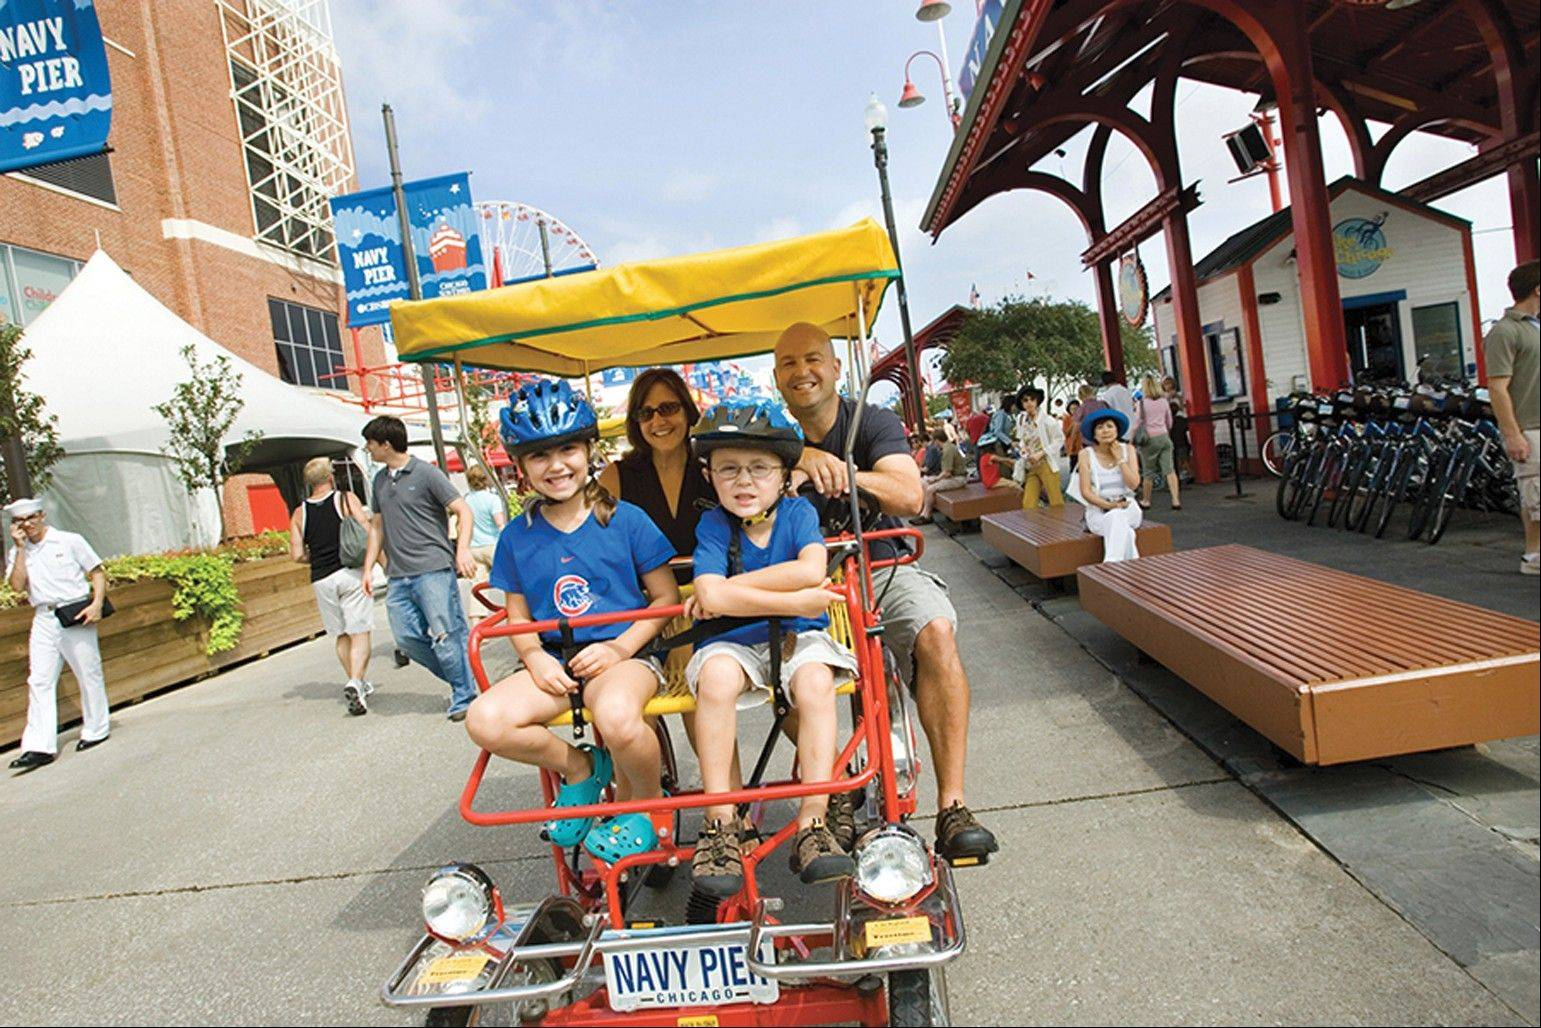 The busier you get in the city, the more you may want to travel by wheel, like this family taking a quadcycle from Bike and Roll Chicago through Navy Pier.